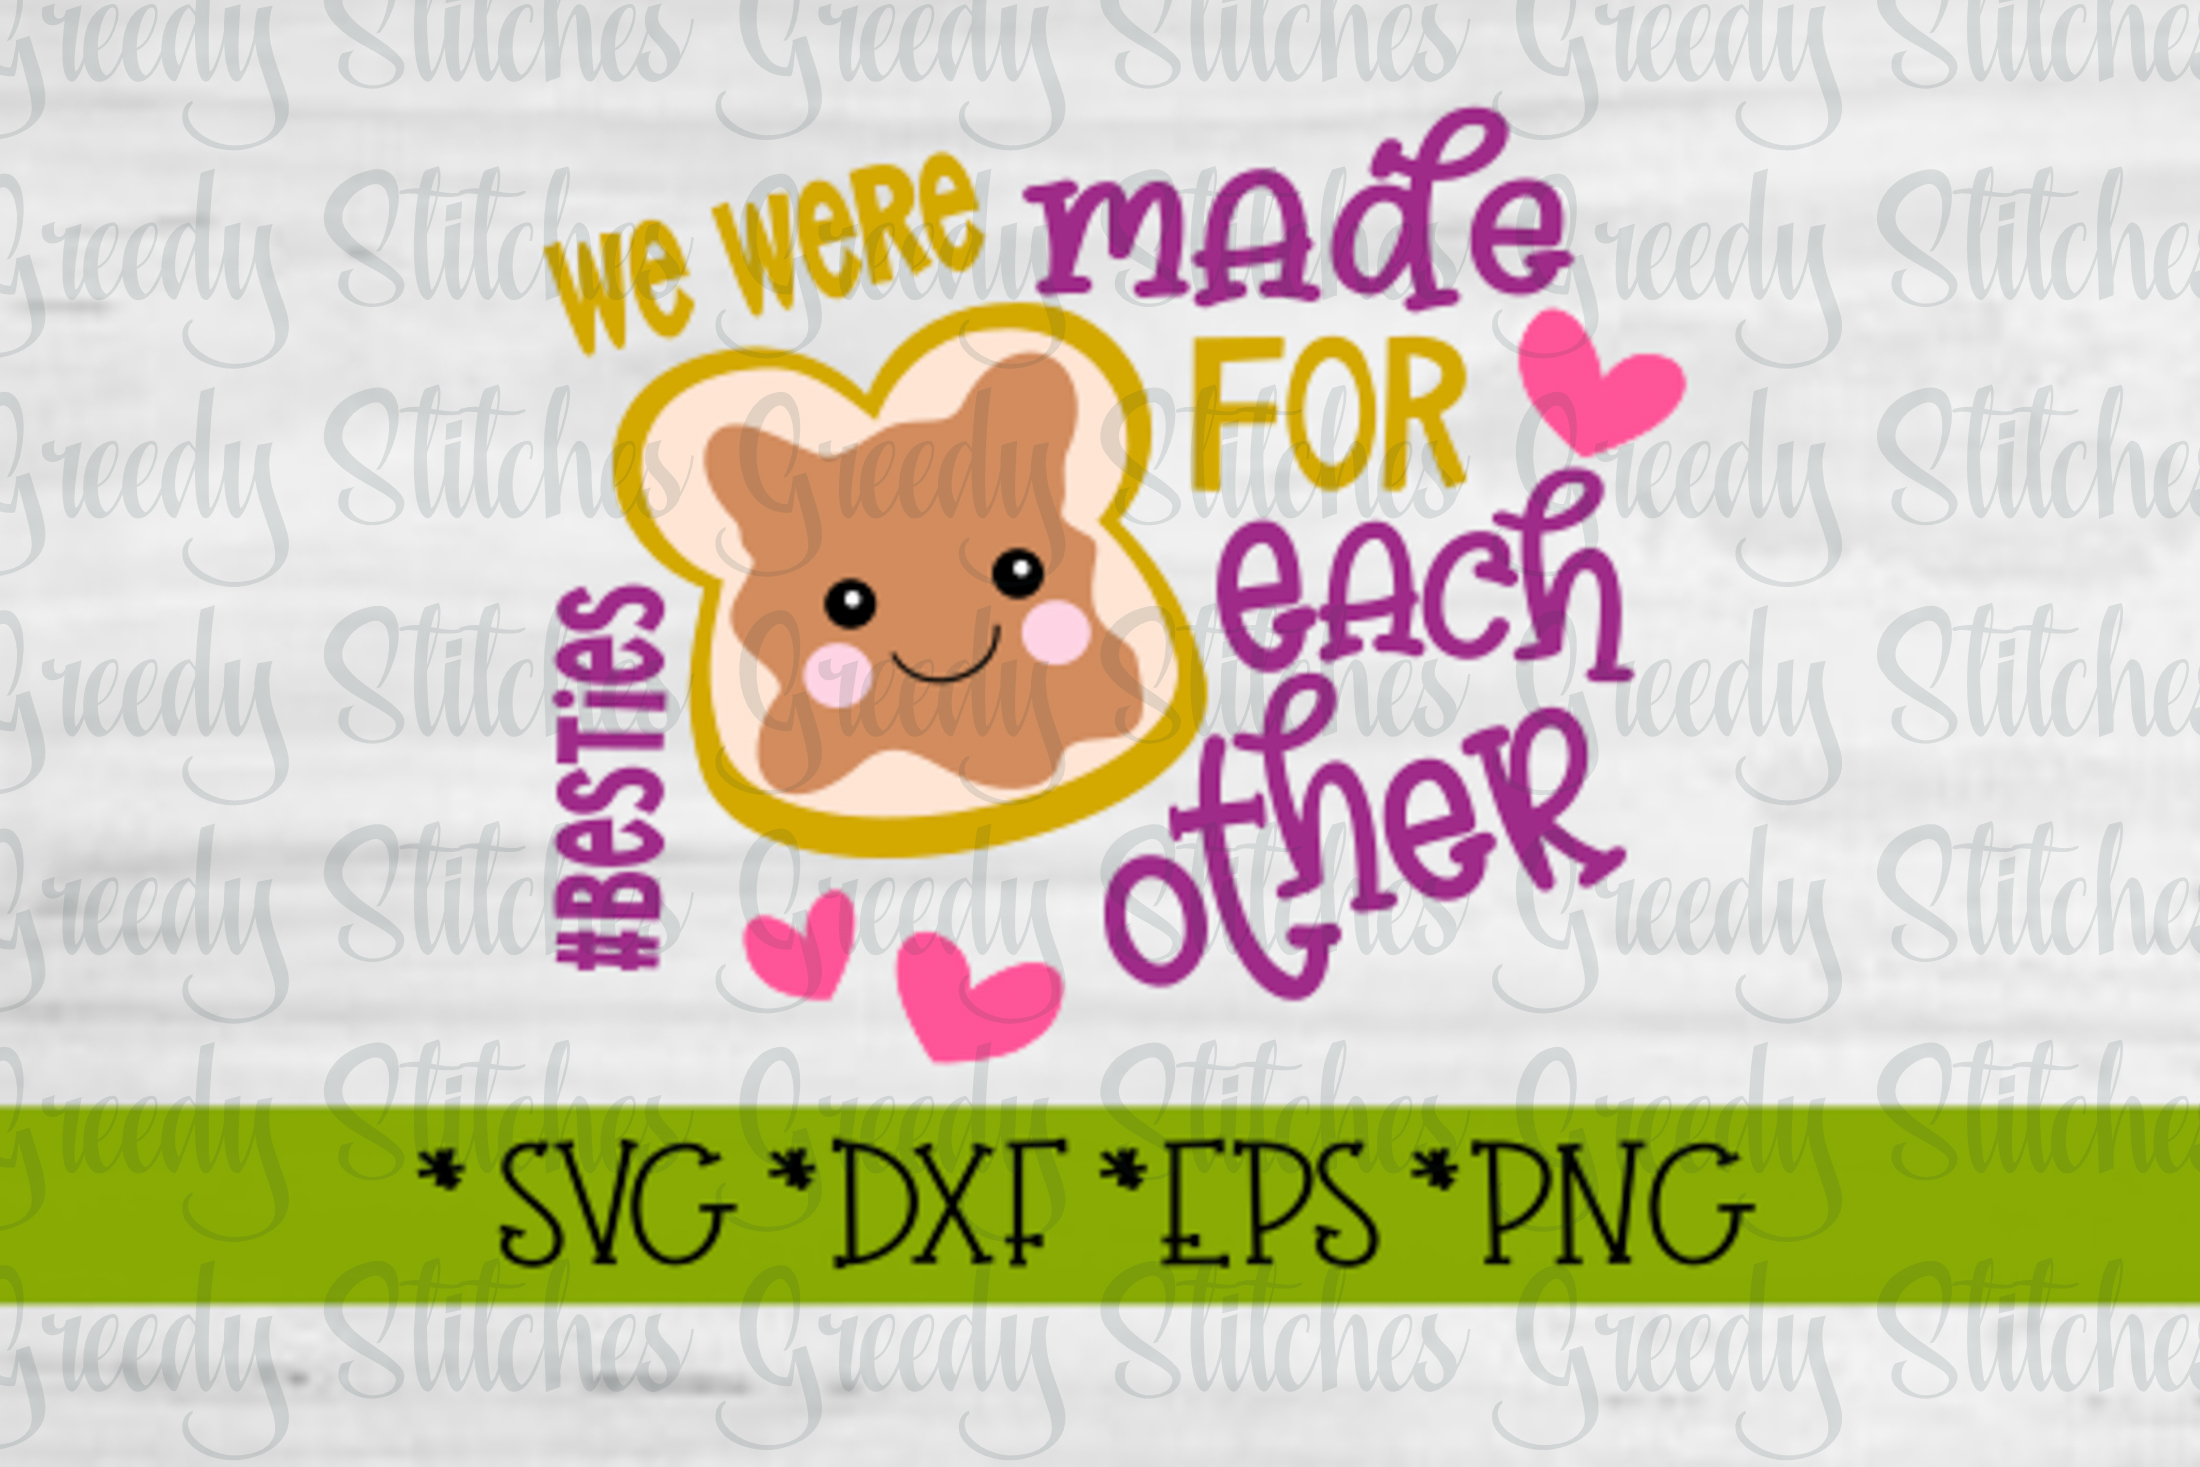 Peanut Butter & Jelly SVG DXF EPS PNG | Best Friends SVG DXF example image 3